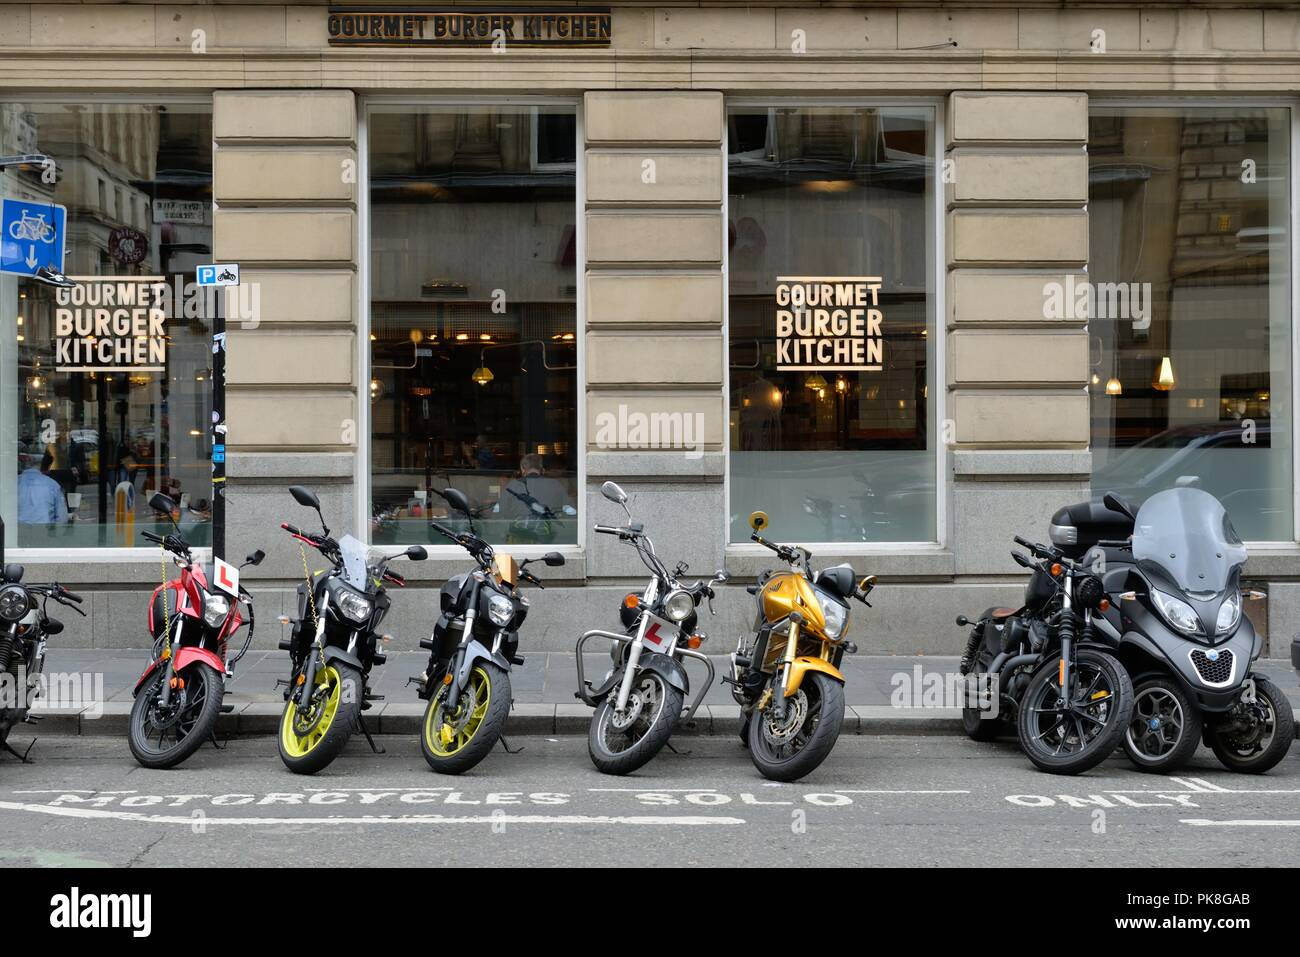 A row of motorbikes parked outside the Gourmet Burger Kitchen in Glasgow city centre, Scotland, UK - Stock Image